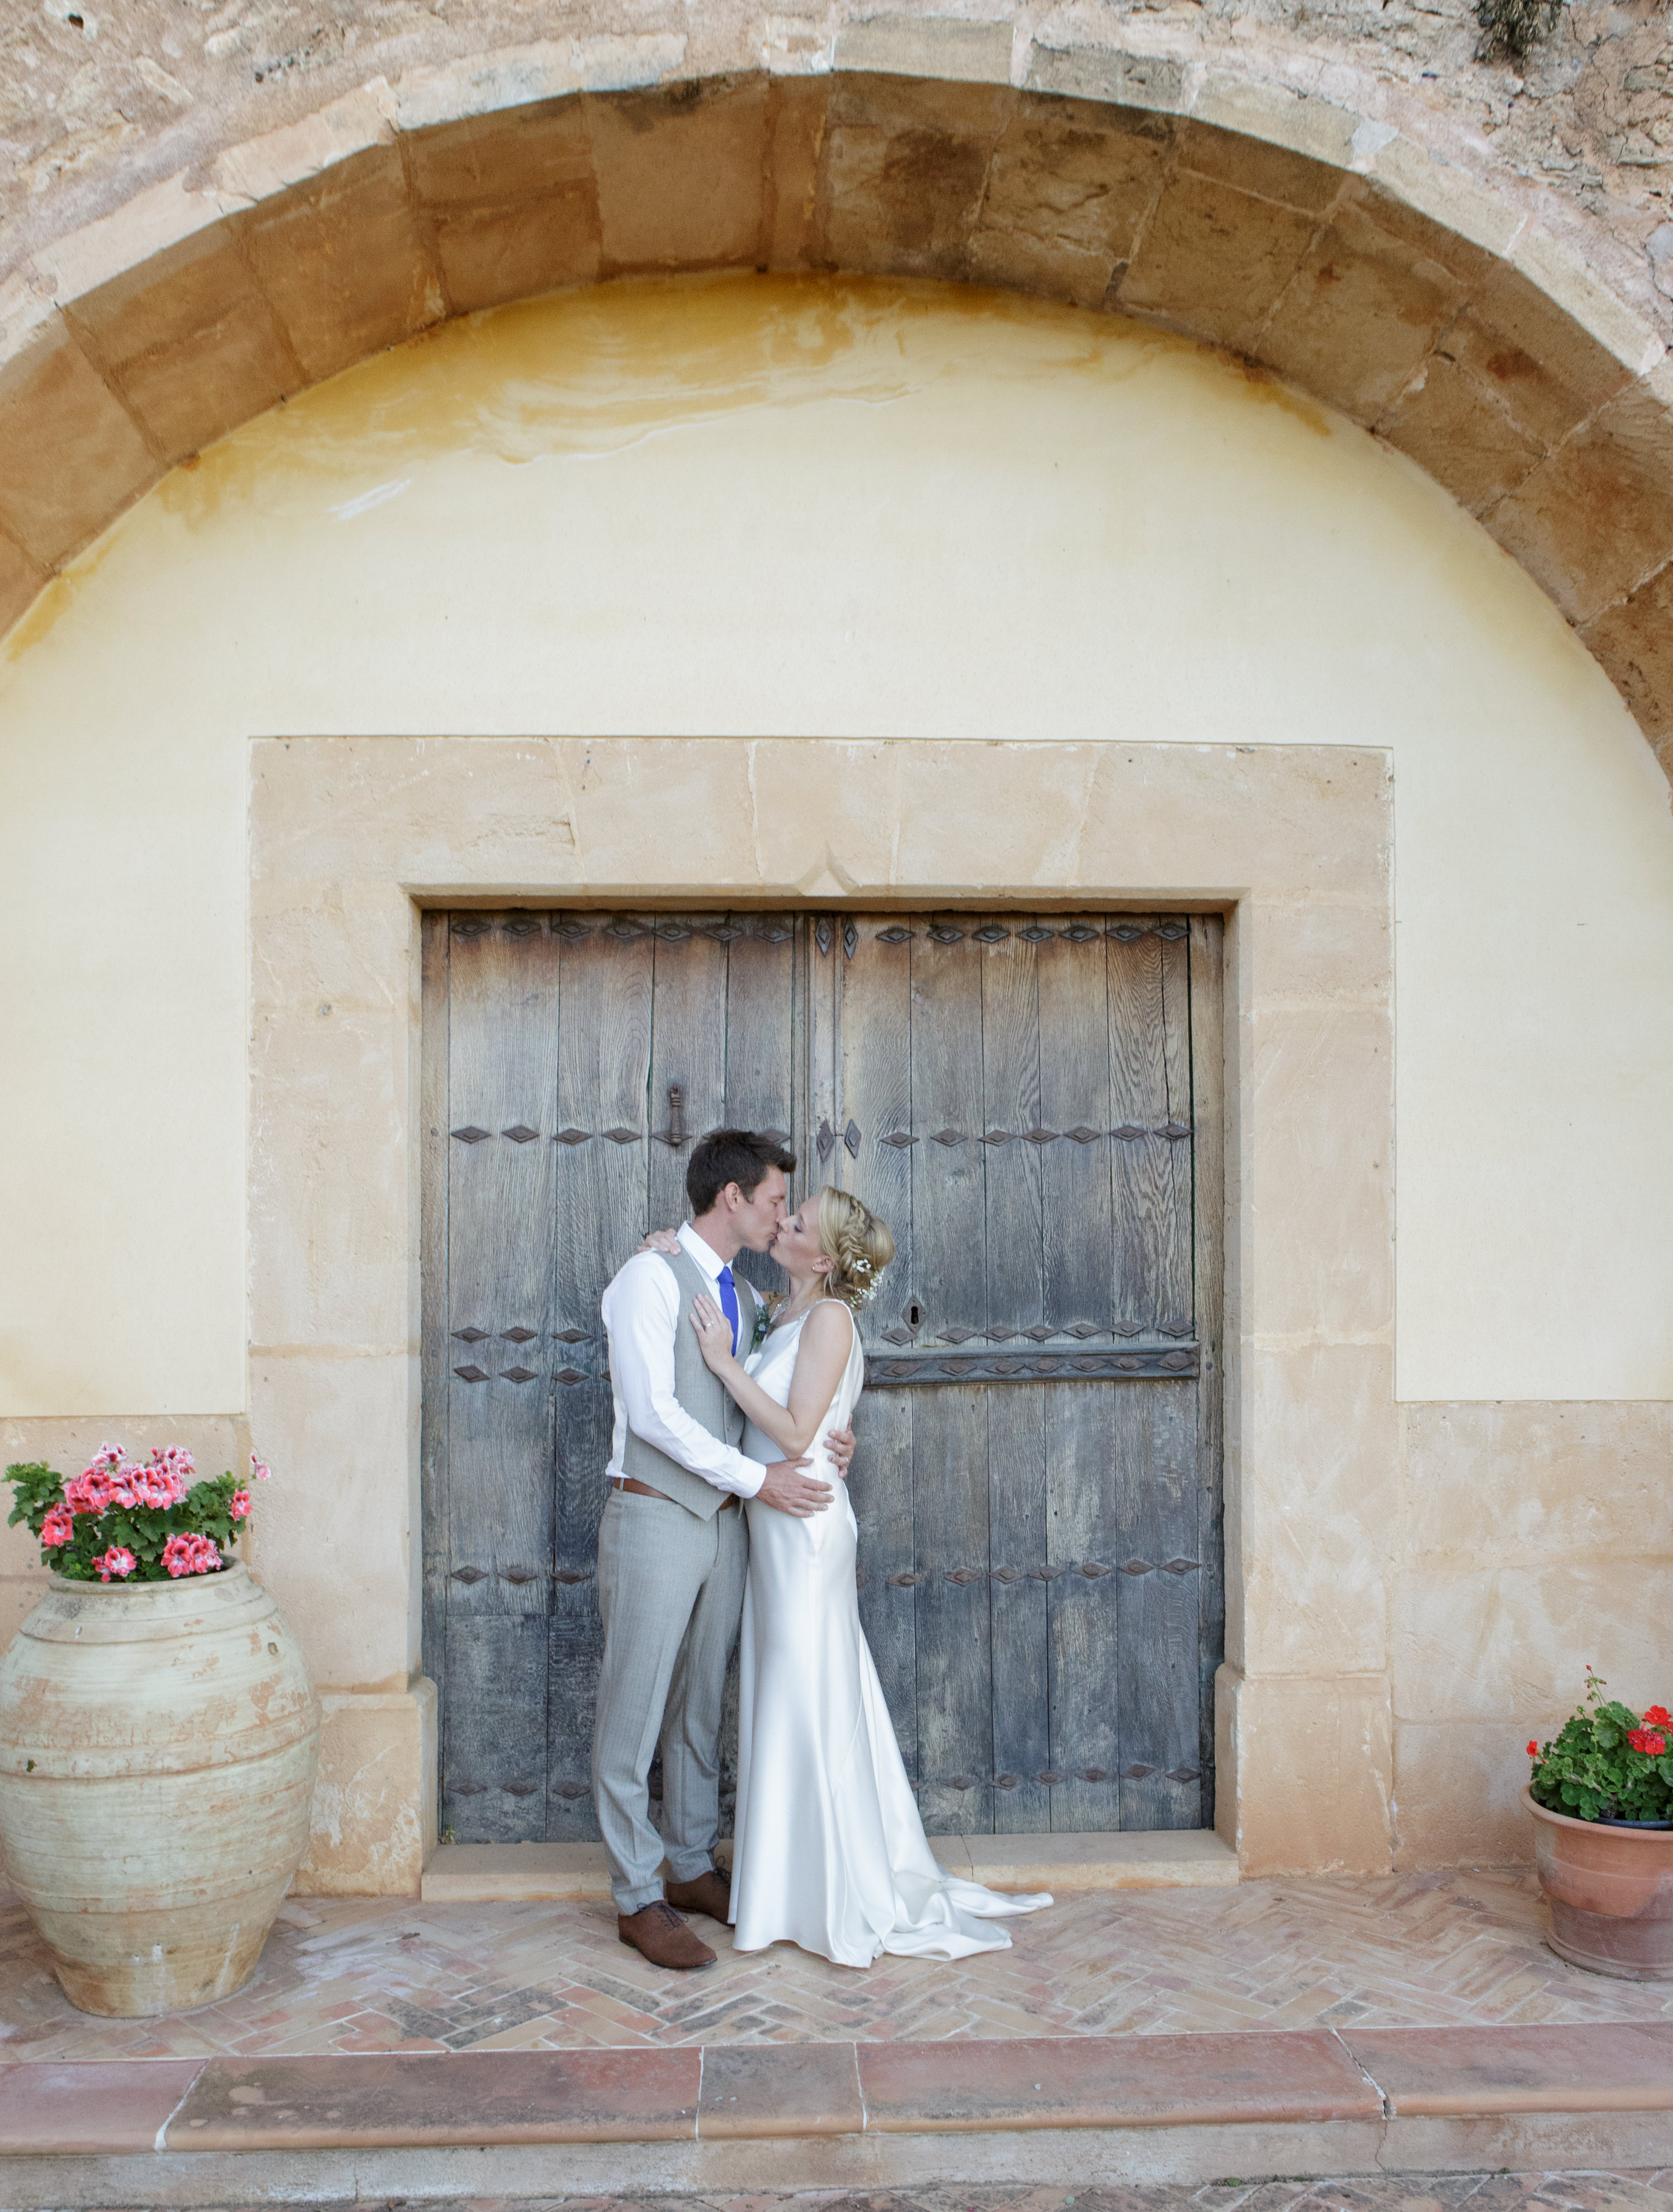 Mirabella Weddings - UK-based destination wedding planner specialising in weddings in France, Italy and around the world.